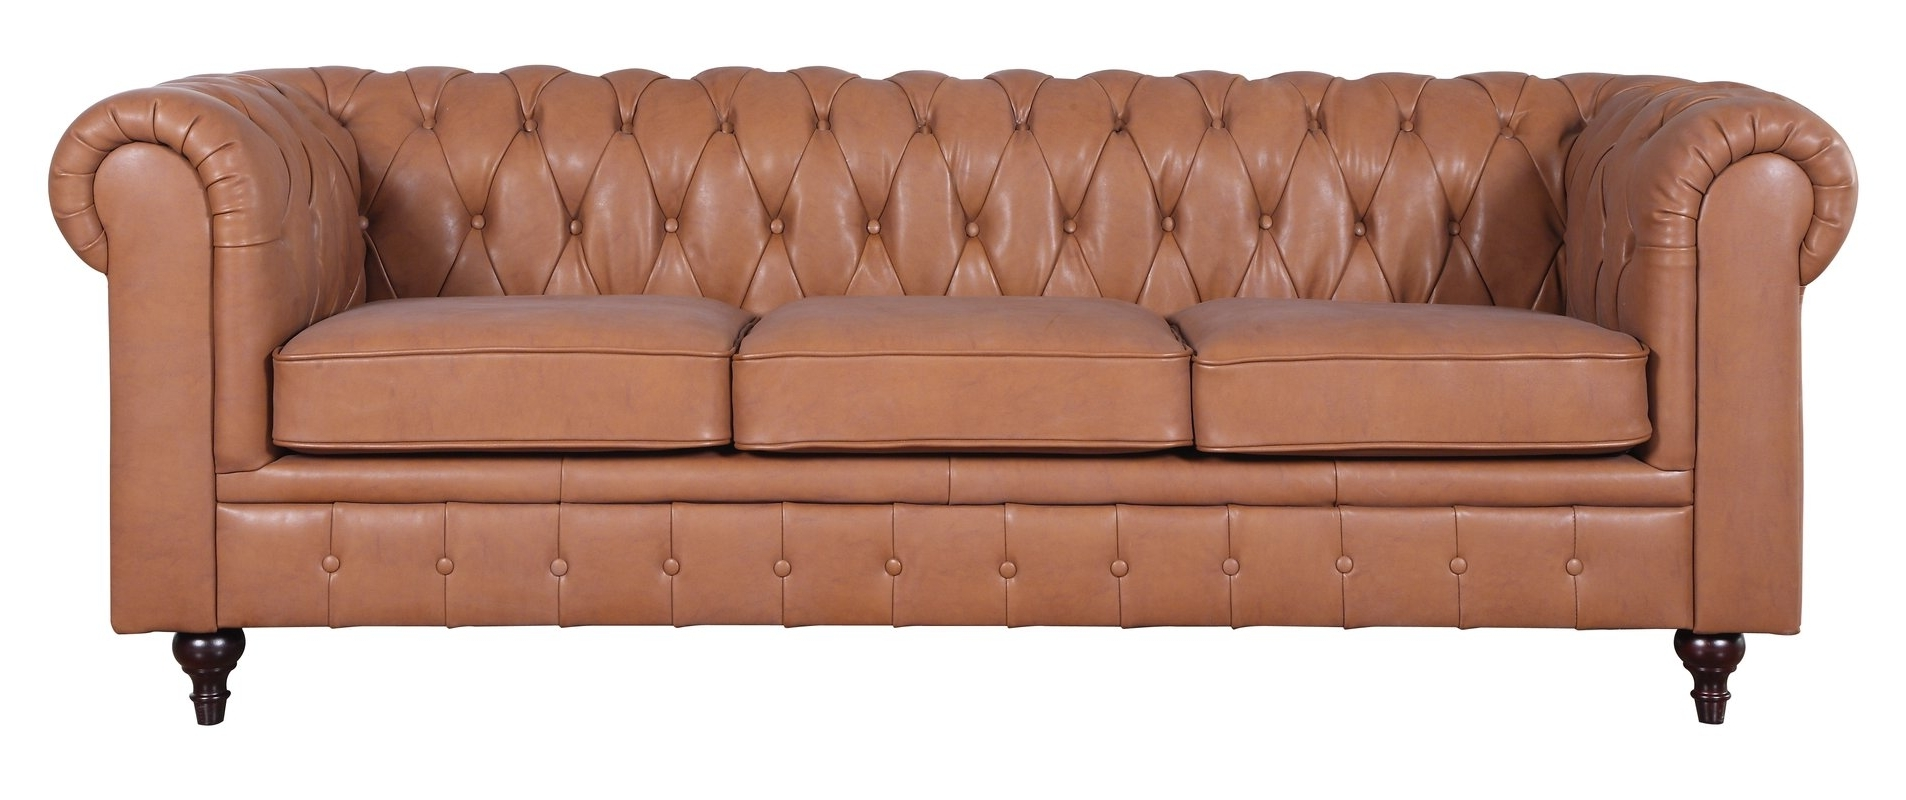 Widely Used Tufted Leather Chesterfield Sofas With Darby Home Co Kacper Tufted Leather Chesterfield Sofa & Reviews (View 20 of 20)